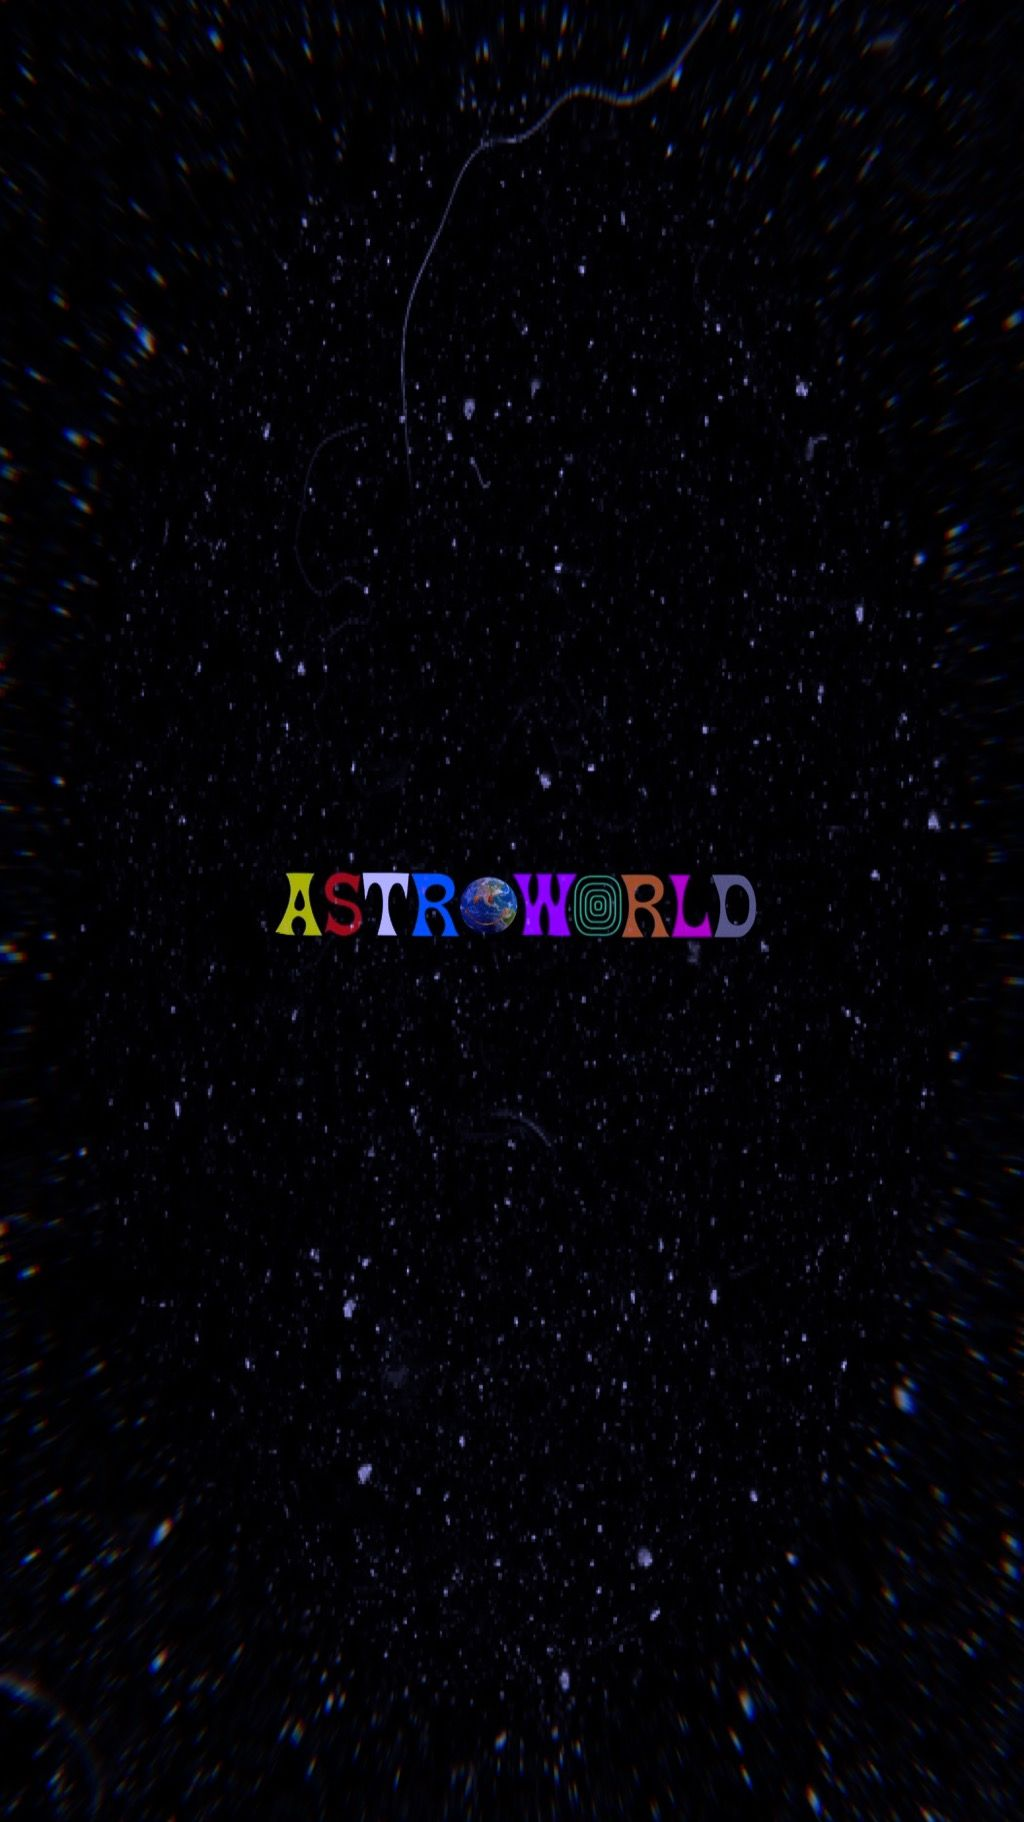 Pin By Chin On Astroworld Travis Scott Fan Art Hype Wallpaper Iphone Wallpaper Vintage Travis Scott Wallpapers